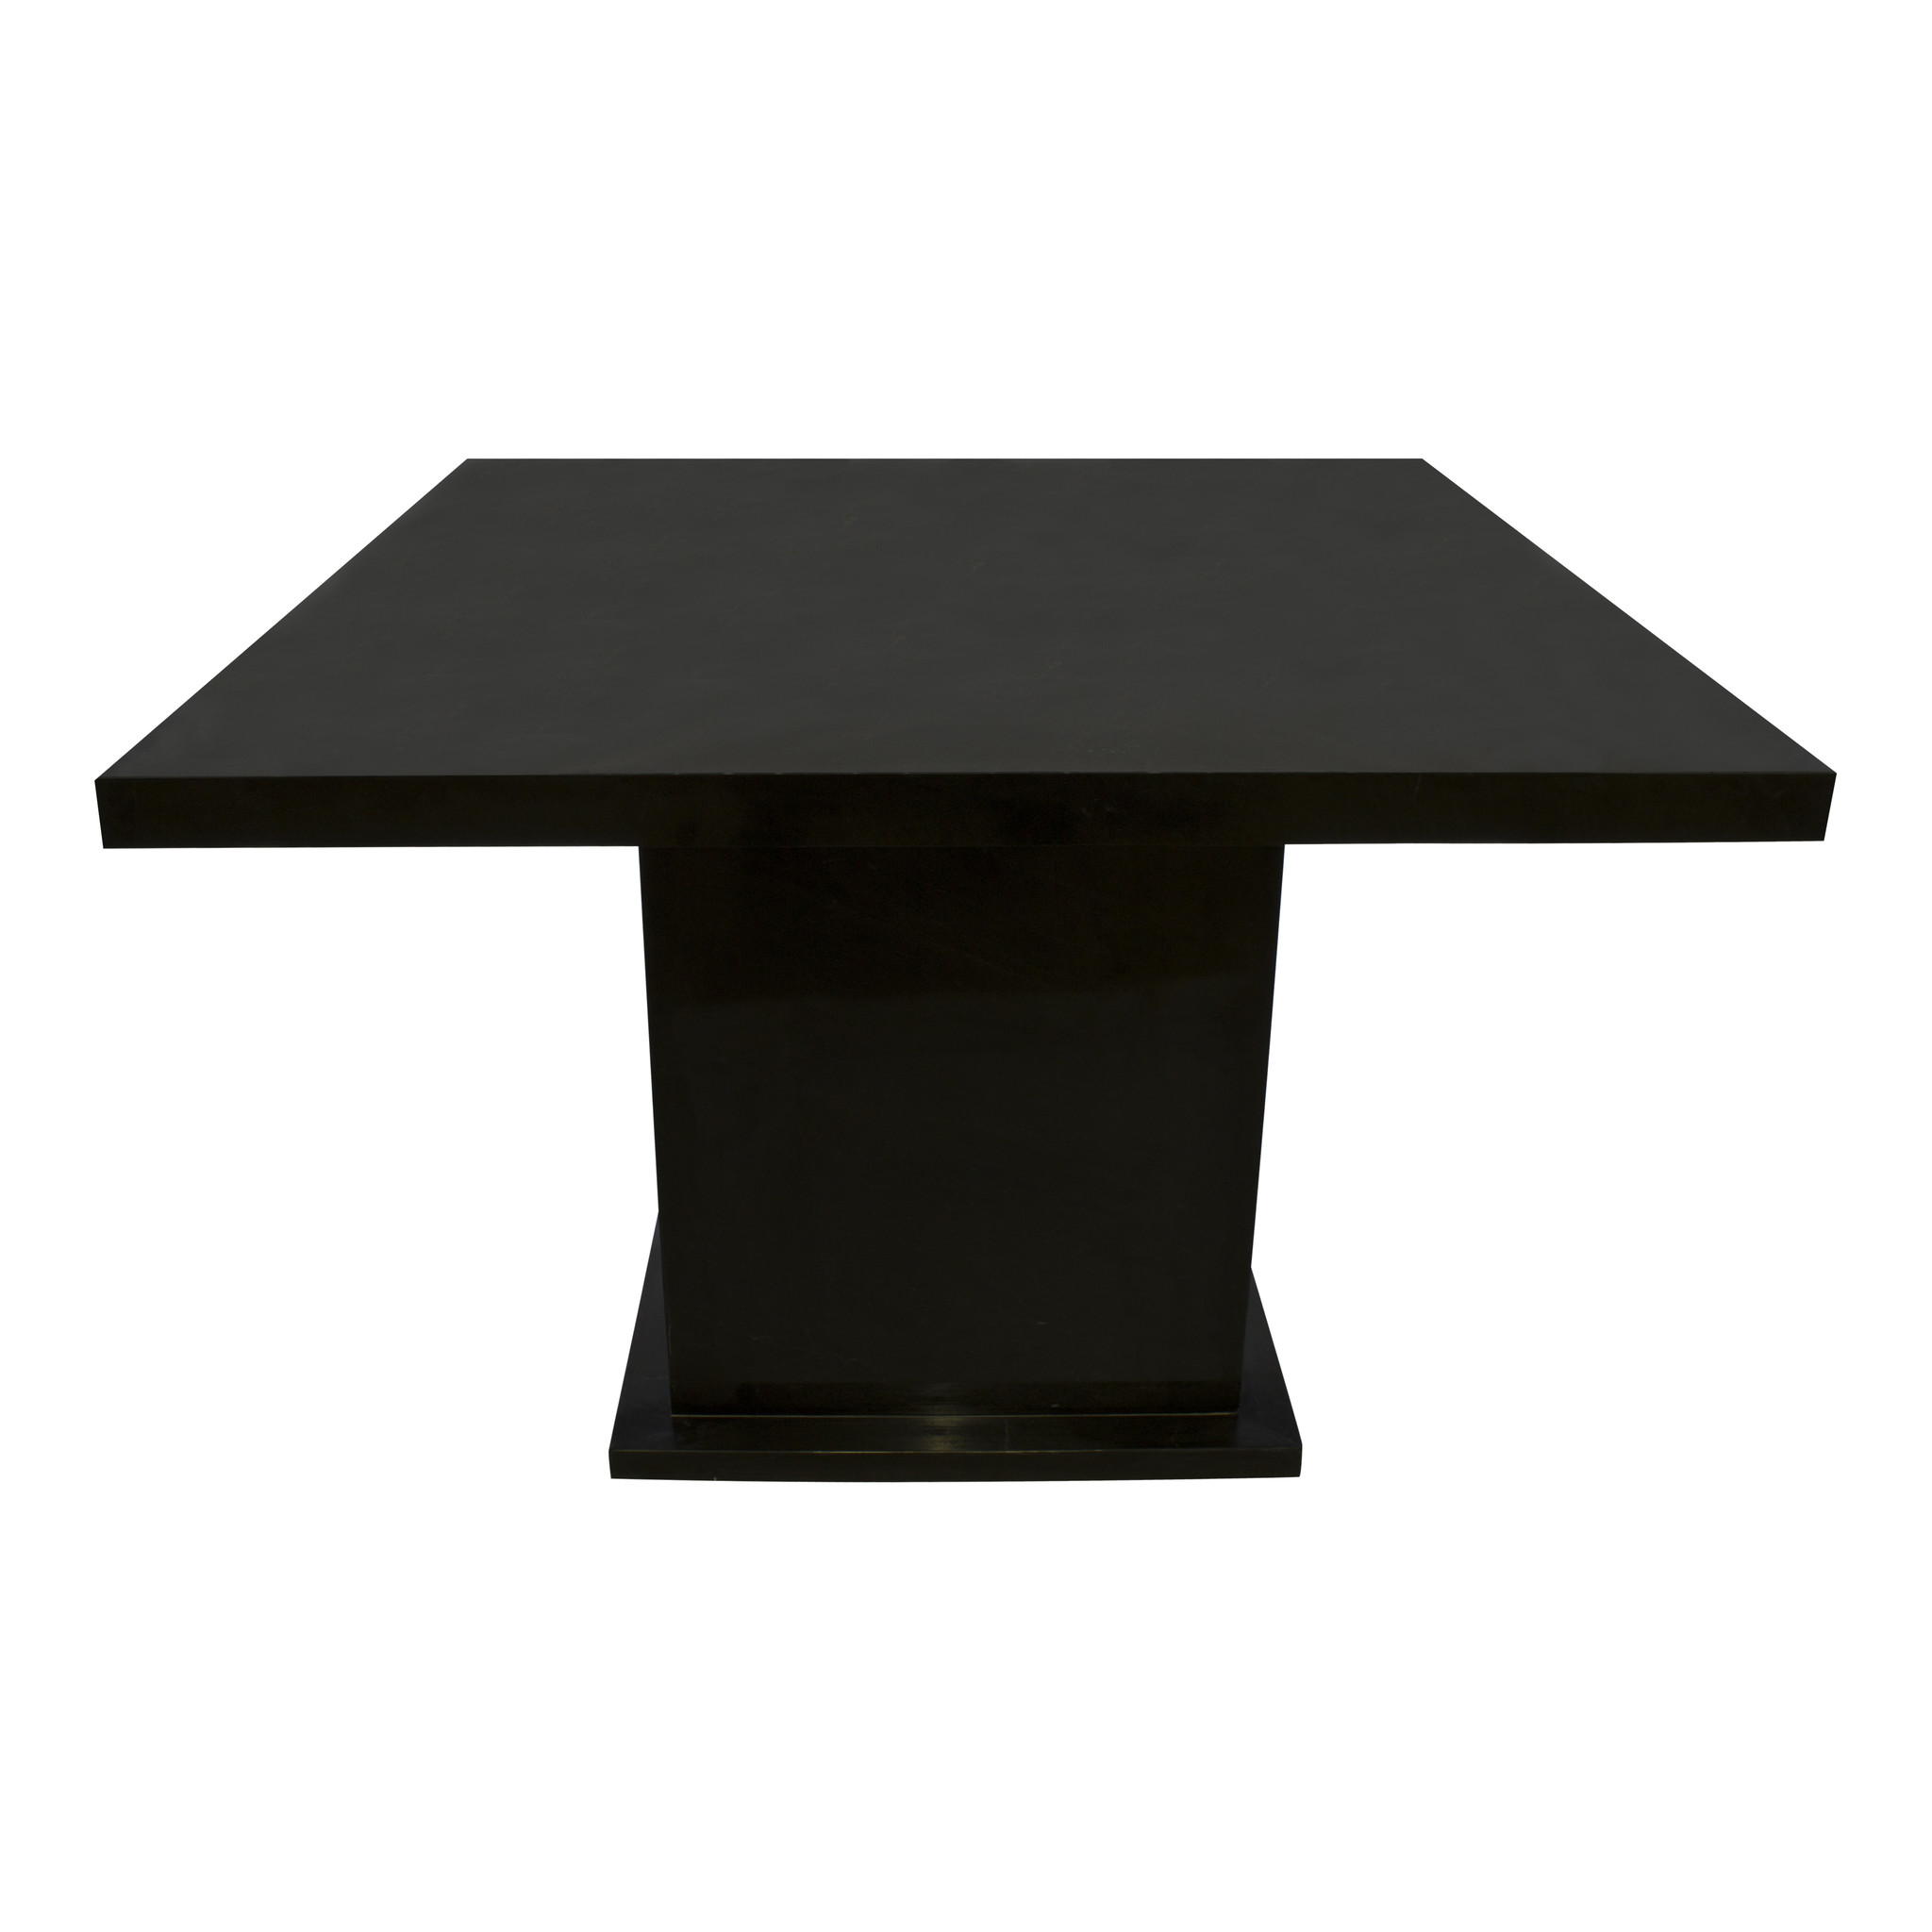 Indomarmer Dining table Square 120x120x79 cm Black Marble